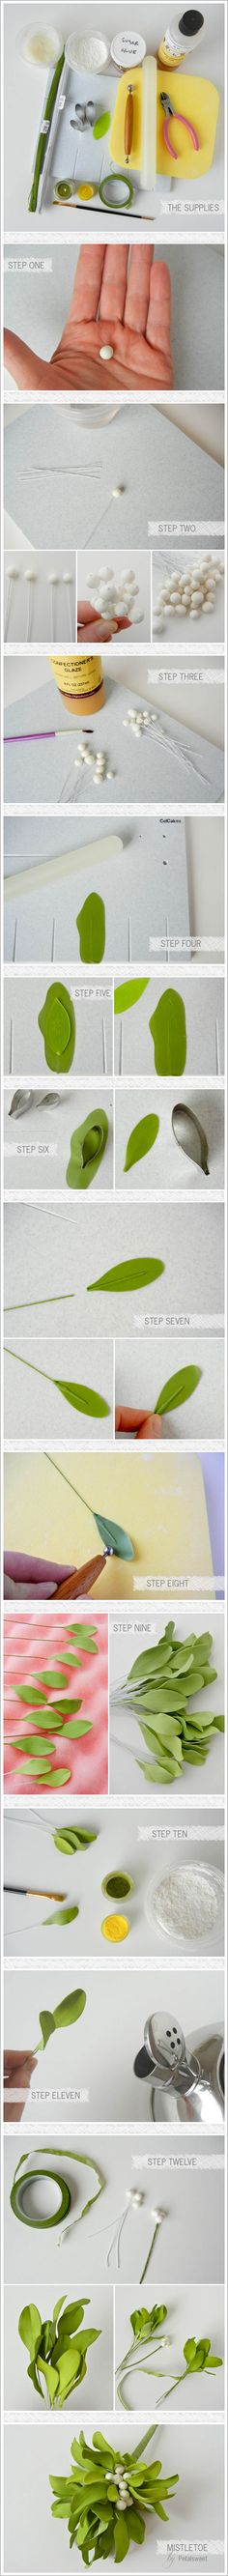 Learn how to make Sugar Mistletoe | a Tutorial by Petalsweet | TheCakeblog.com